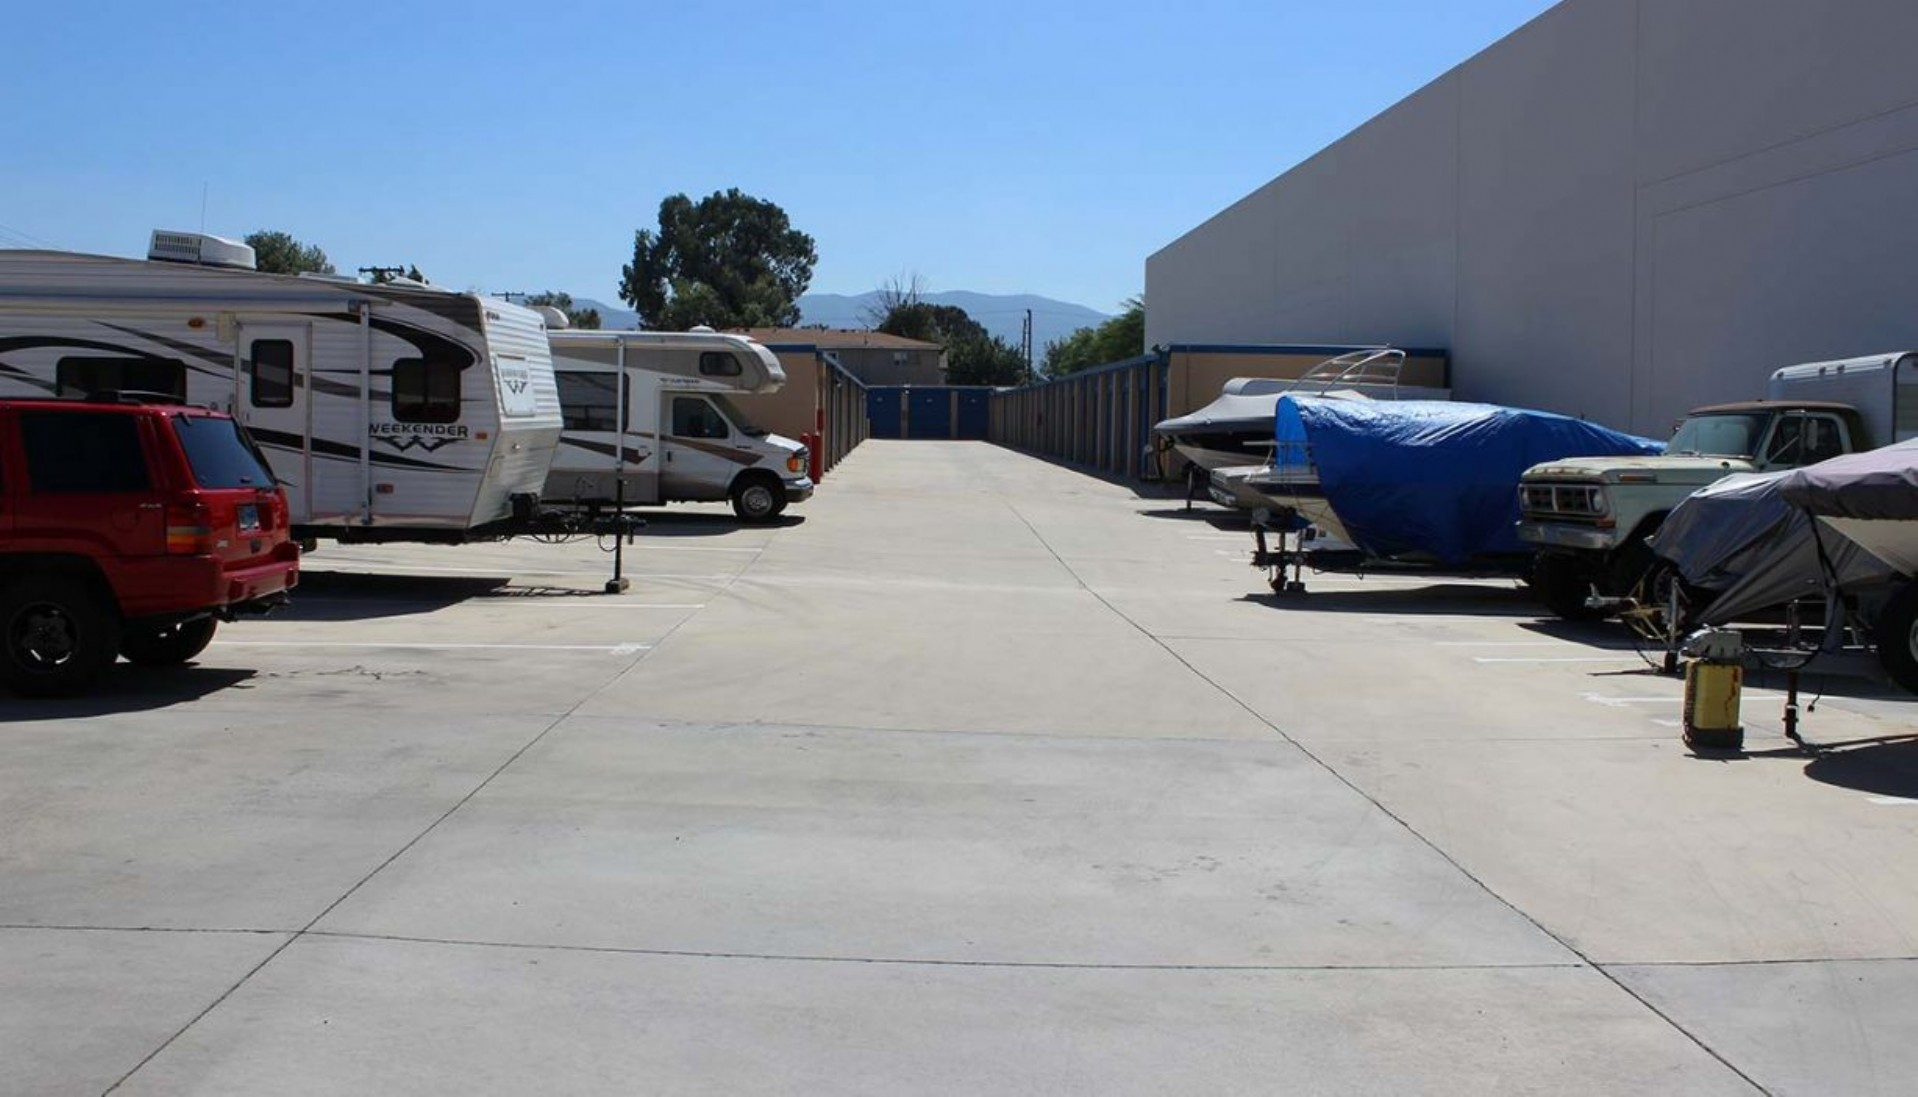 Boats, cars, RVs, and trailers parked in the outdoor vehicle storage area